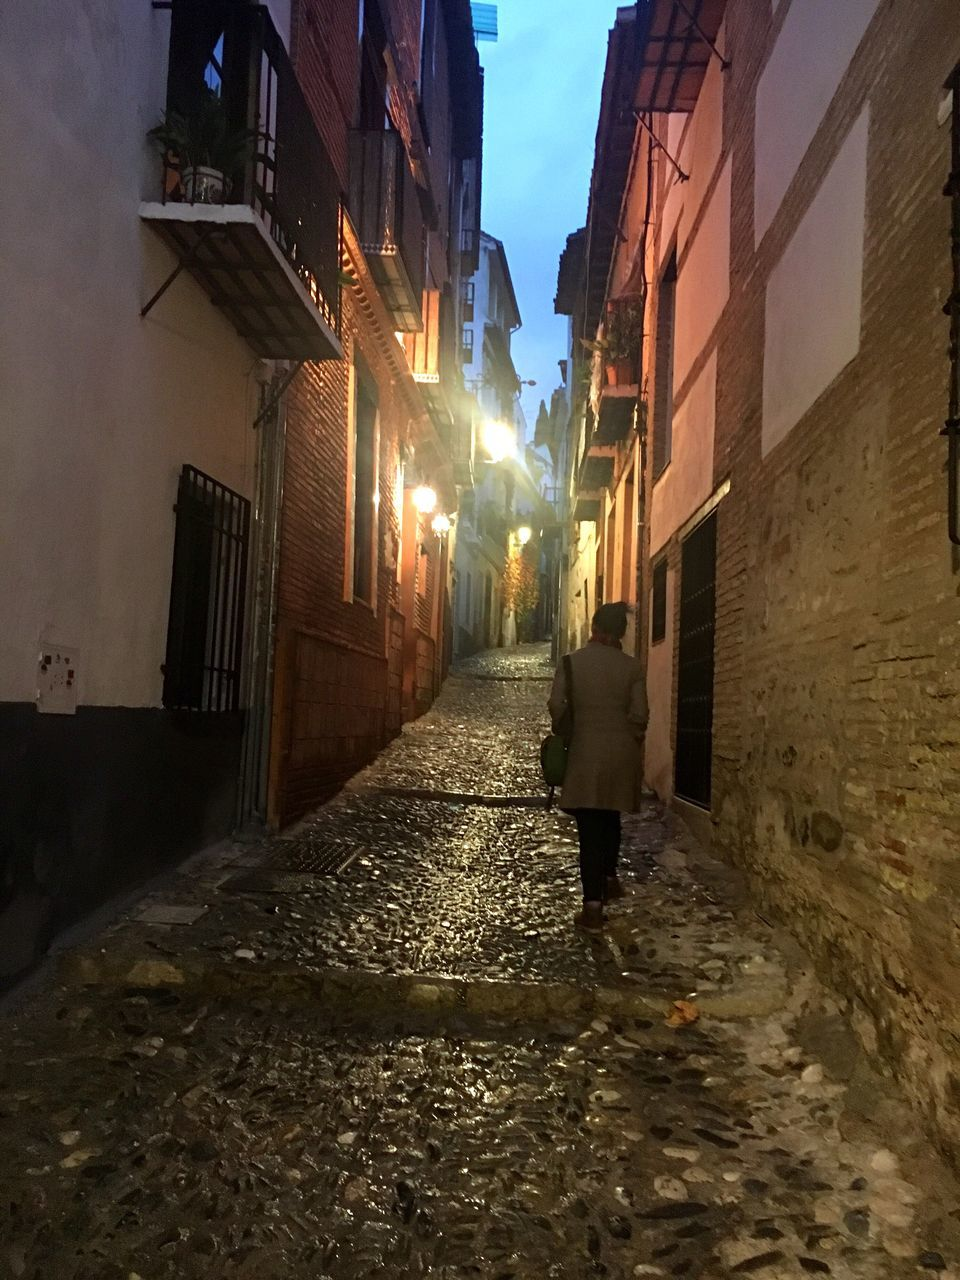 architecture, building exterior, built structure, cobblestone, full length, the way forward, street, outdoors, walking, alley, sky, walkway, night, illuminated, one person, city, people